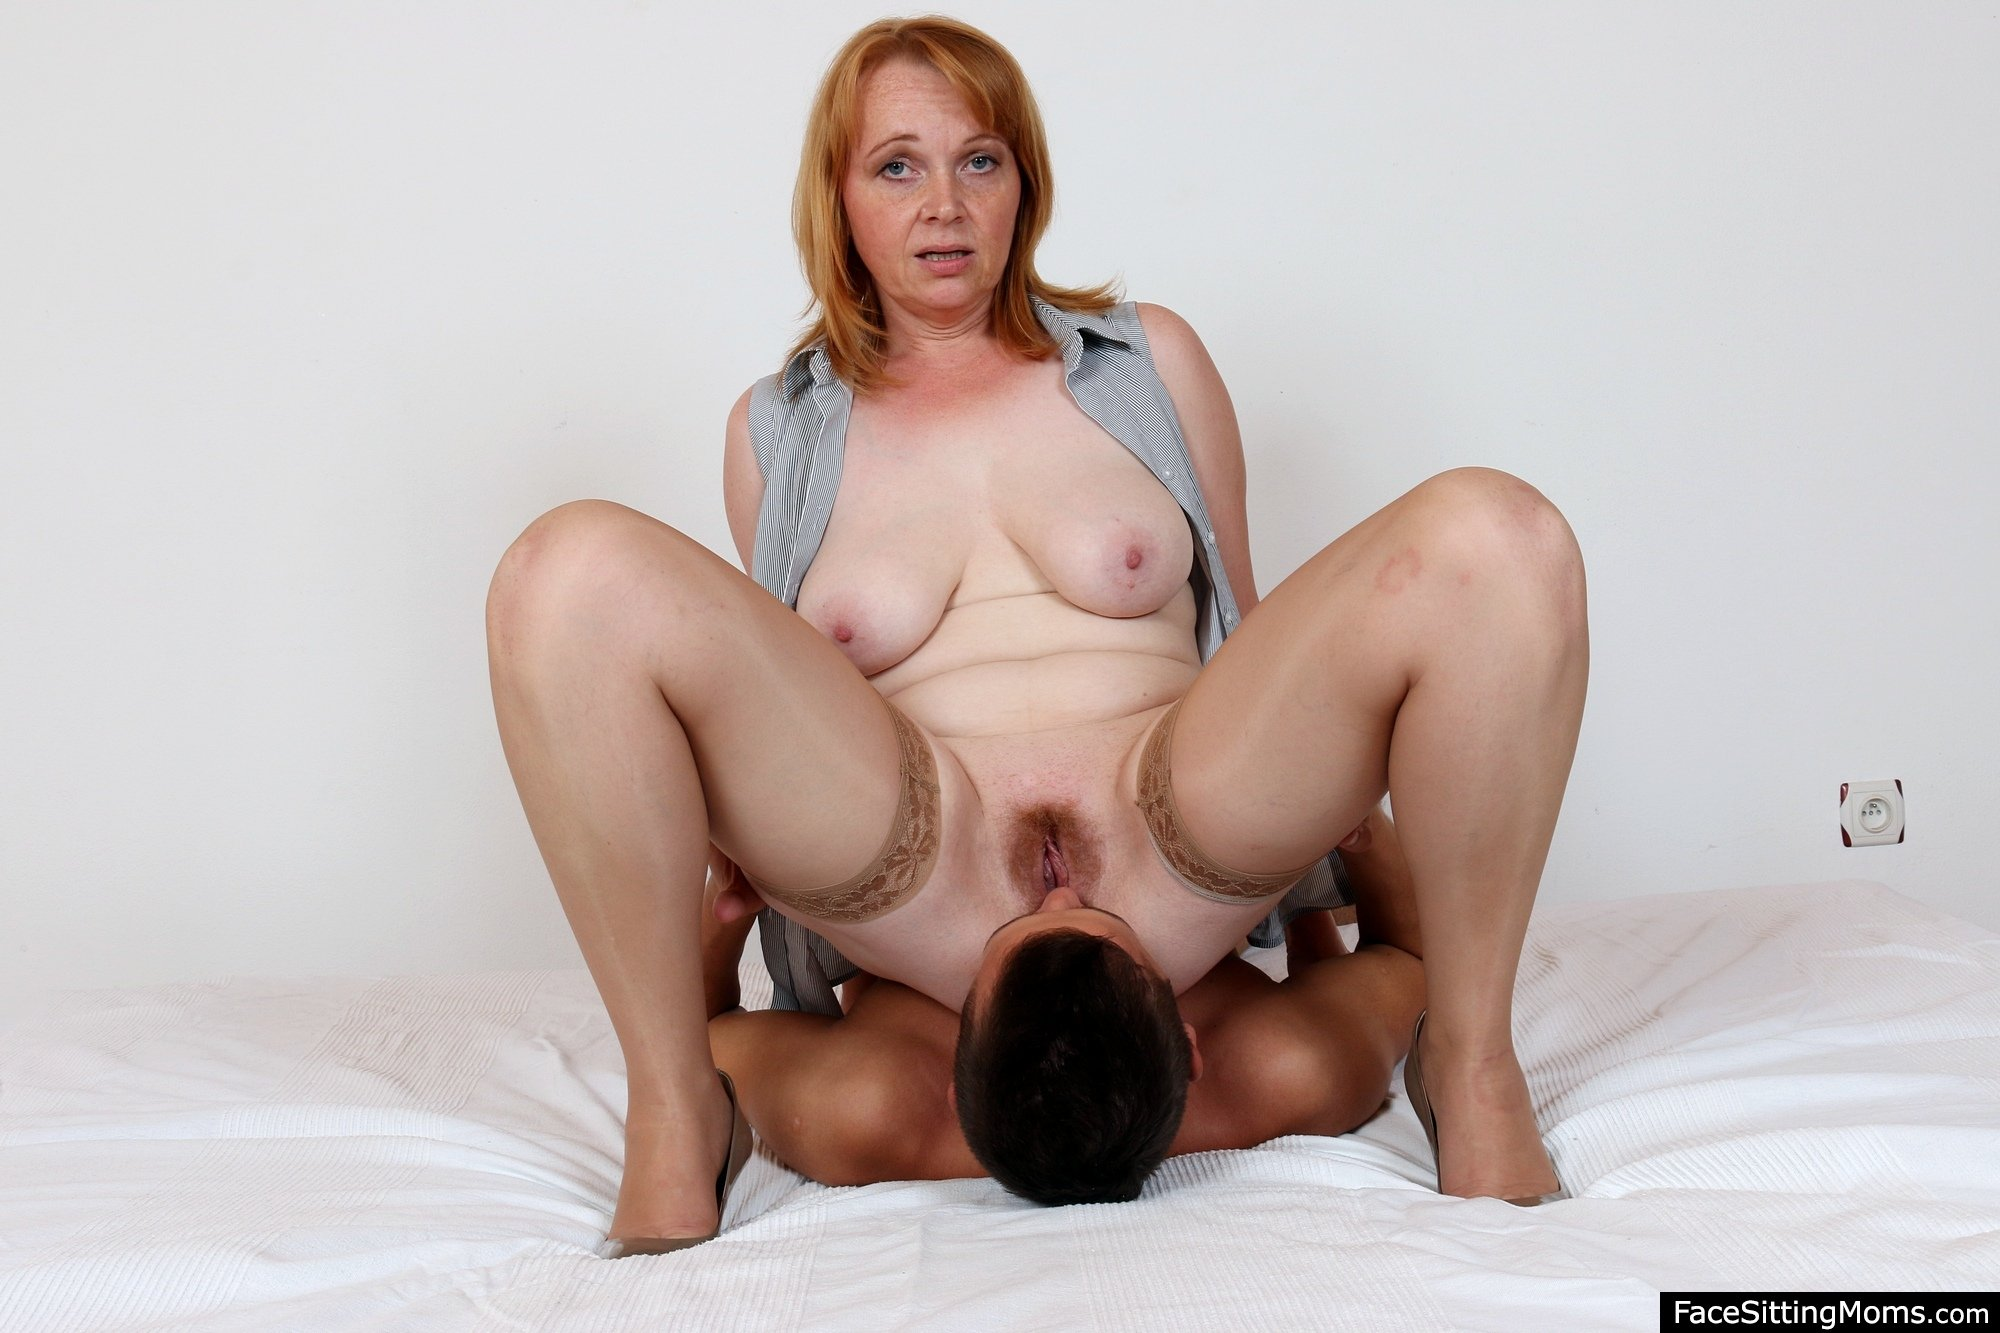 Lovely amateur housewife has two guys satisfying her needs photo